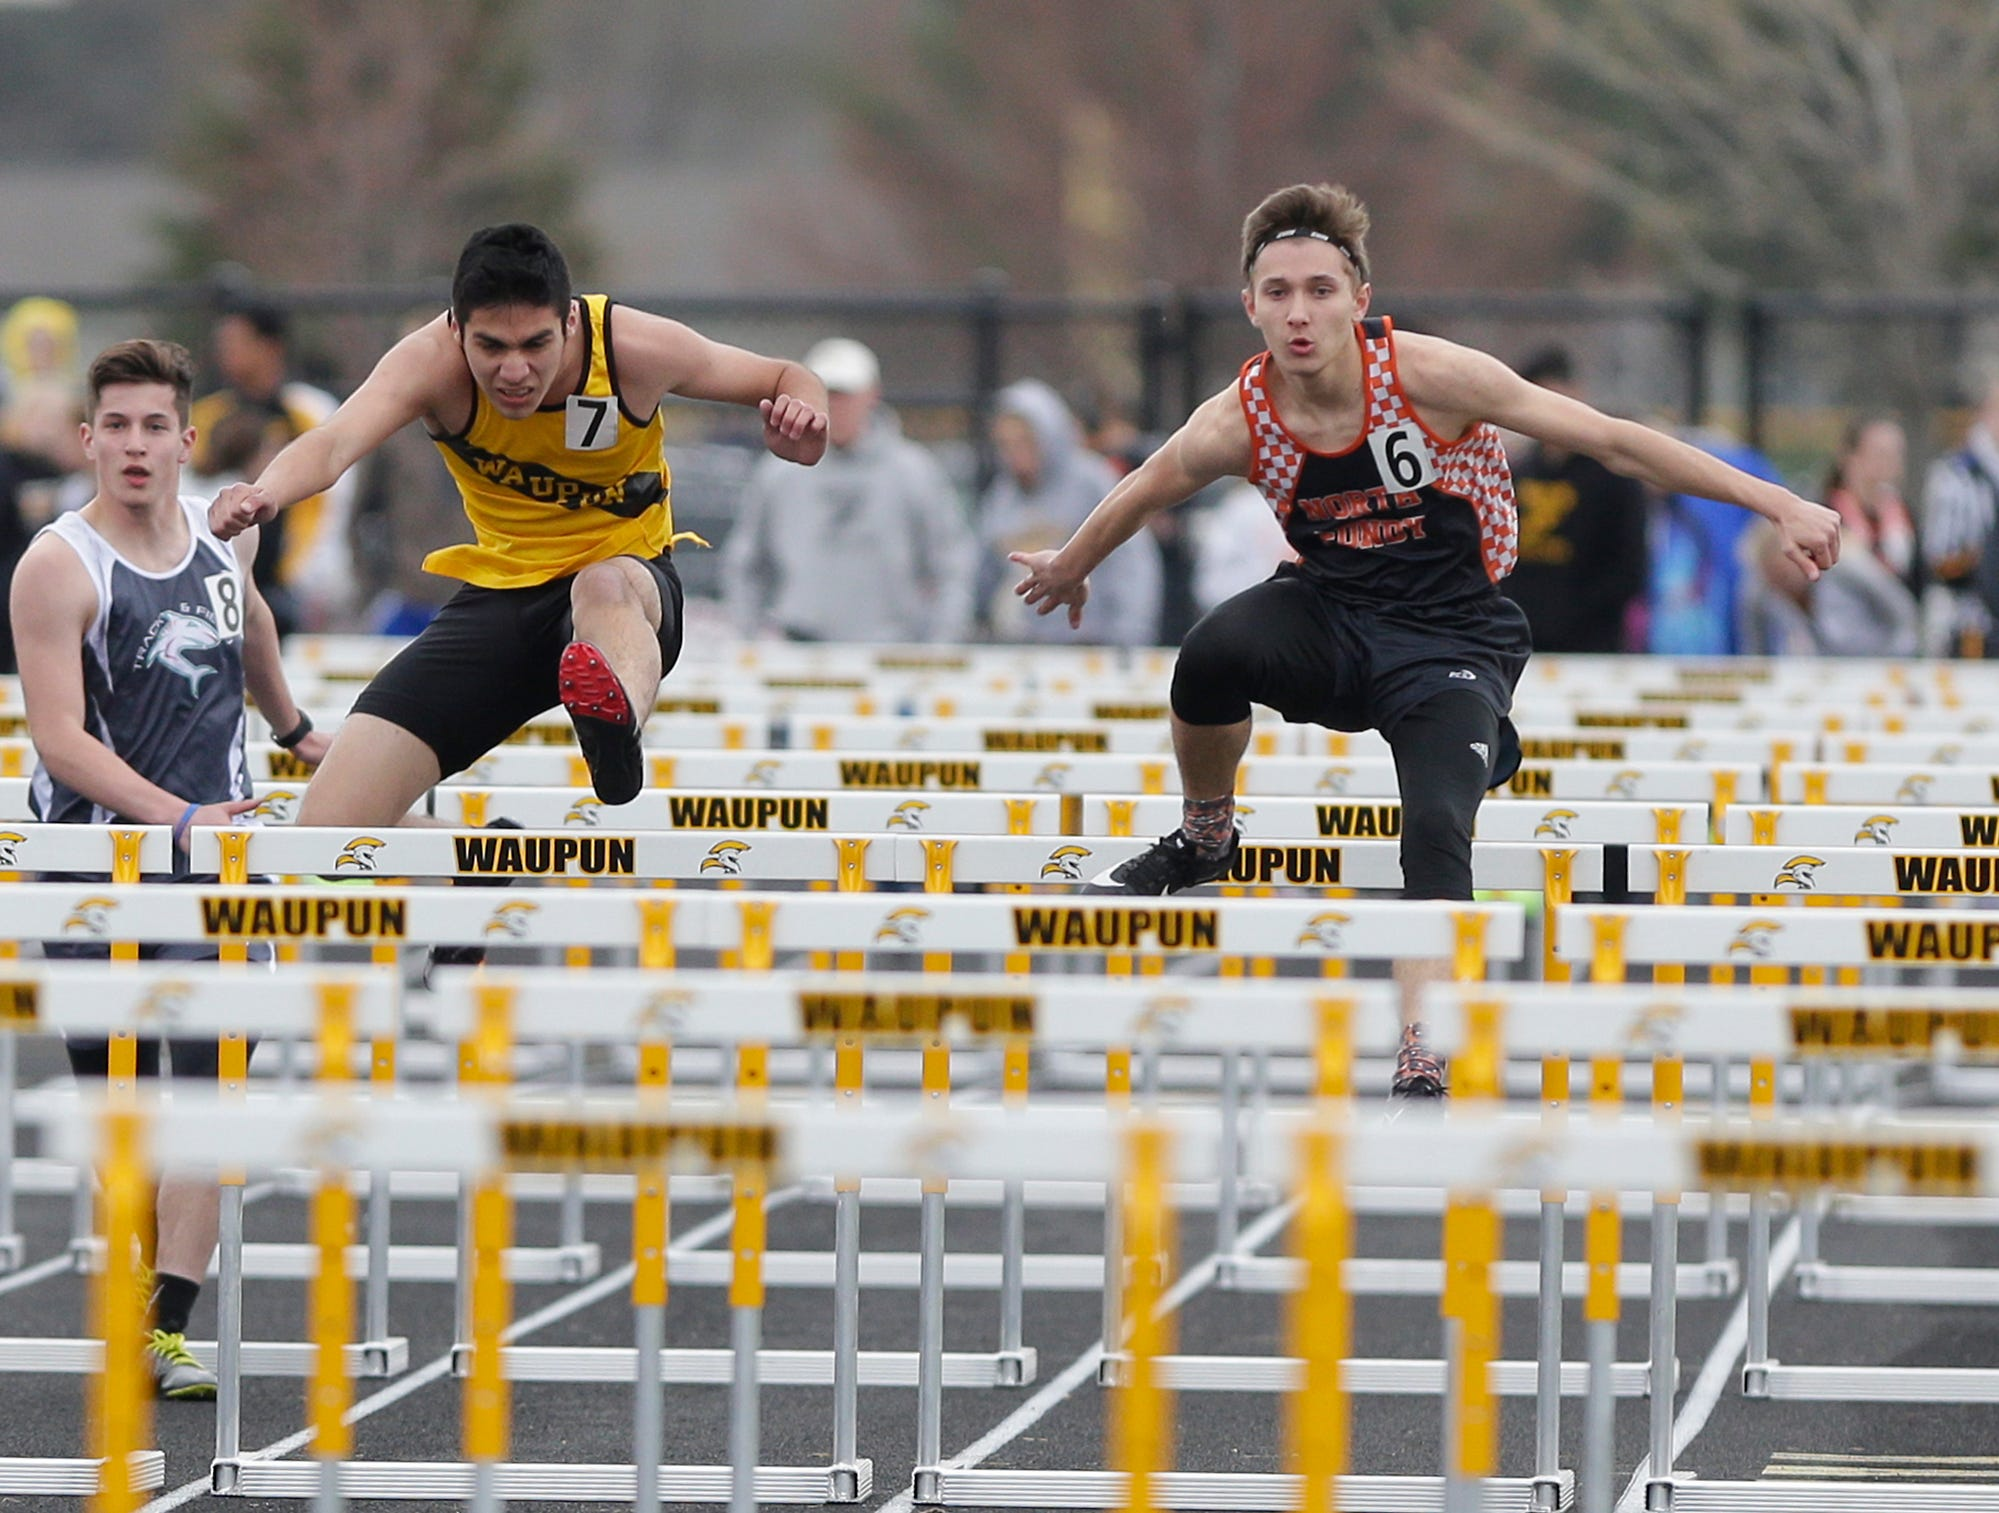 Jeremy Jimenez of Waupun High School (7) and Cameron Hilt of North Fond du Lac High School compete in the 110 meter hurdles Friday, May 3, 2019 at the Waupun High School Invitational track and field meet. Doug Raflik/USA TODAY NETWORK-Wisconsin